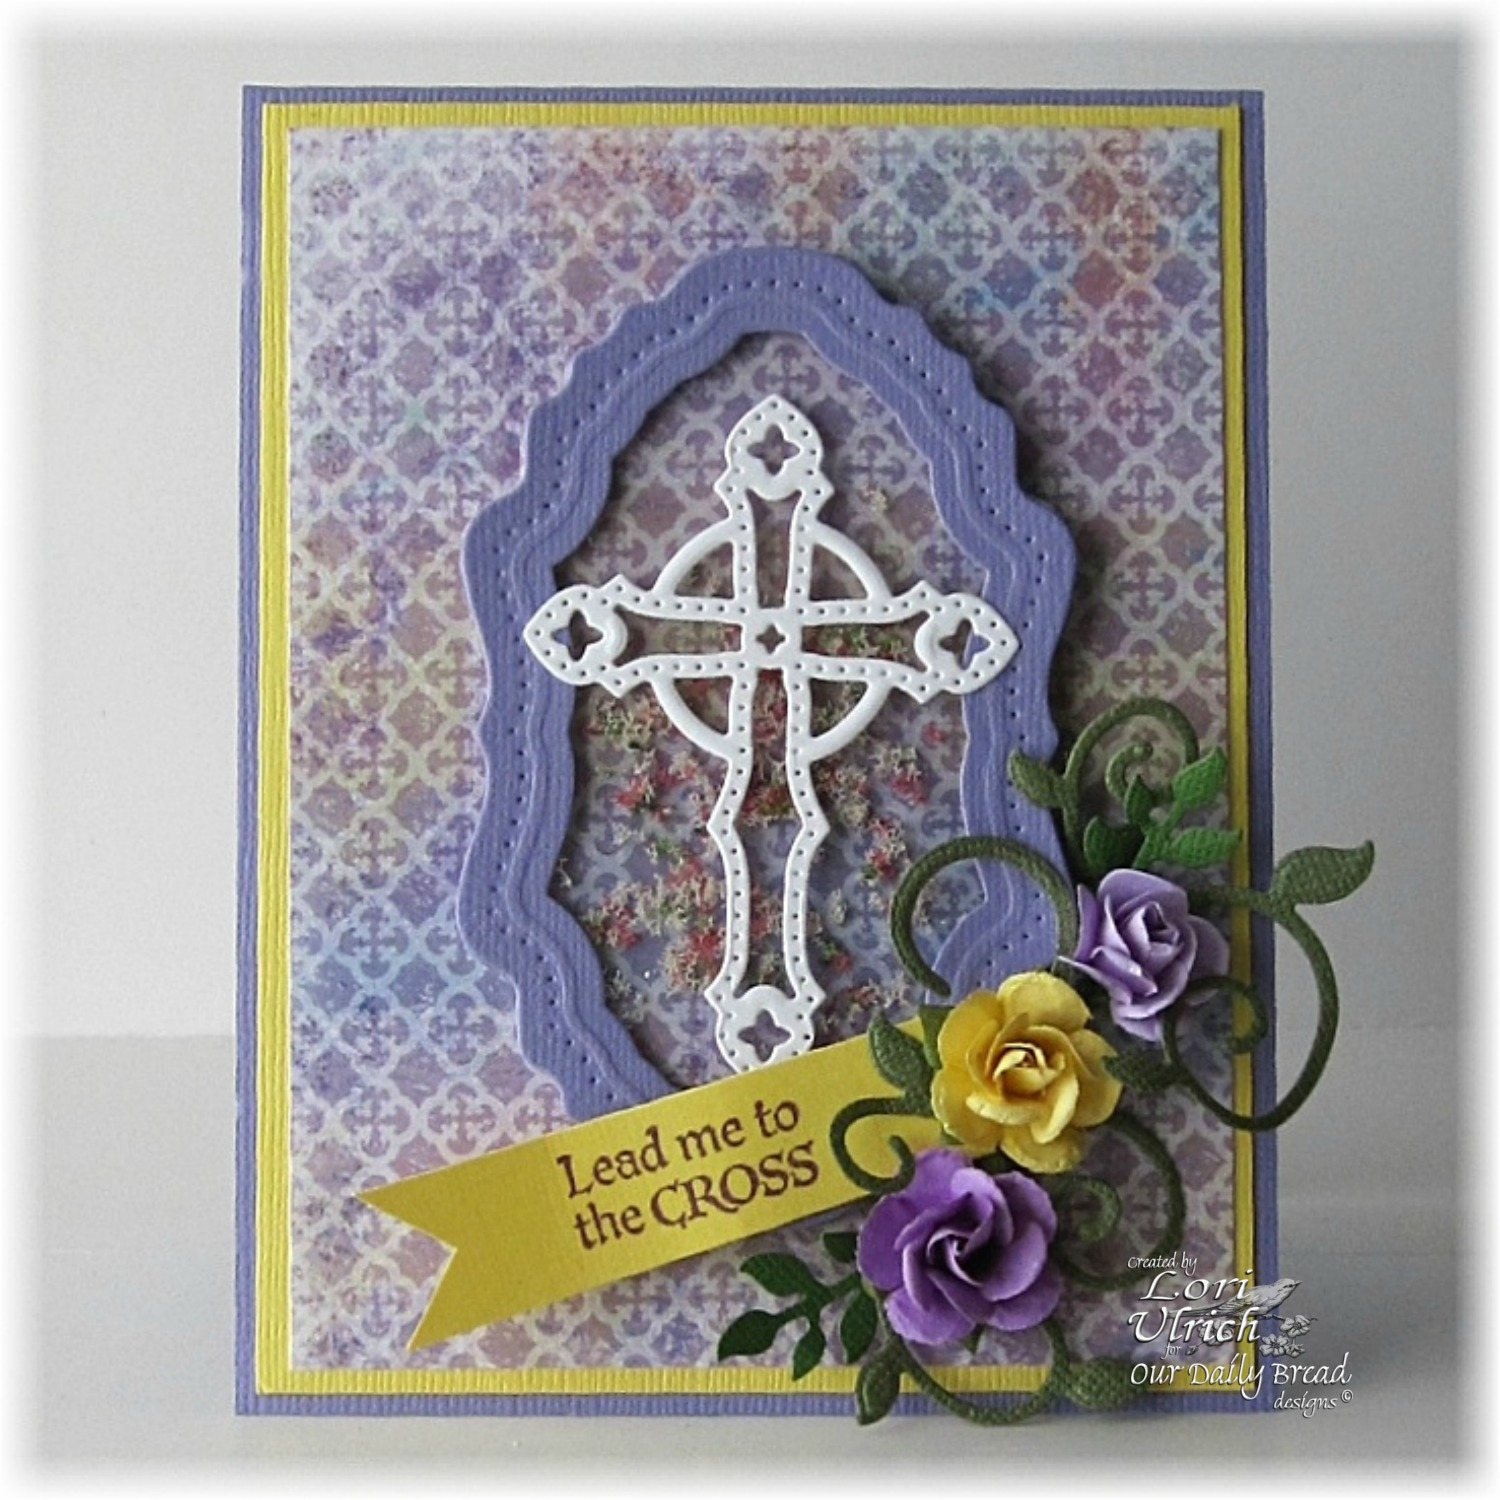 Stamps - Our Daily Bread Designs Christian Faith Paper Collection, ODBD Custom Ornamental Crosses Die, ODBD Custom Fancy Foliage Die, ODBD Custom Vintage Flourish Pattern Die, The Cross